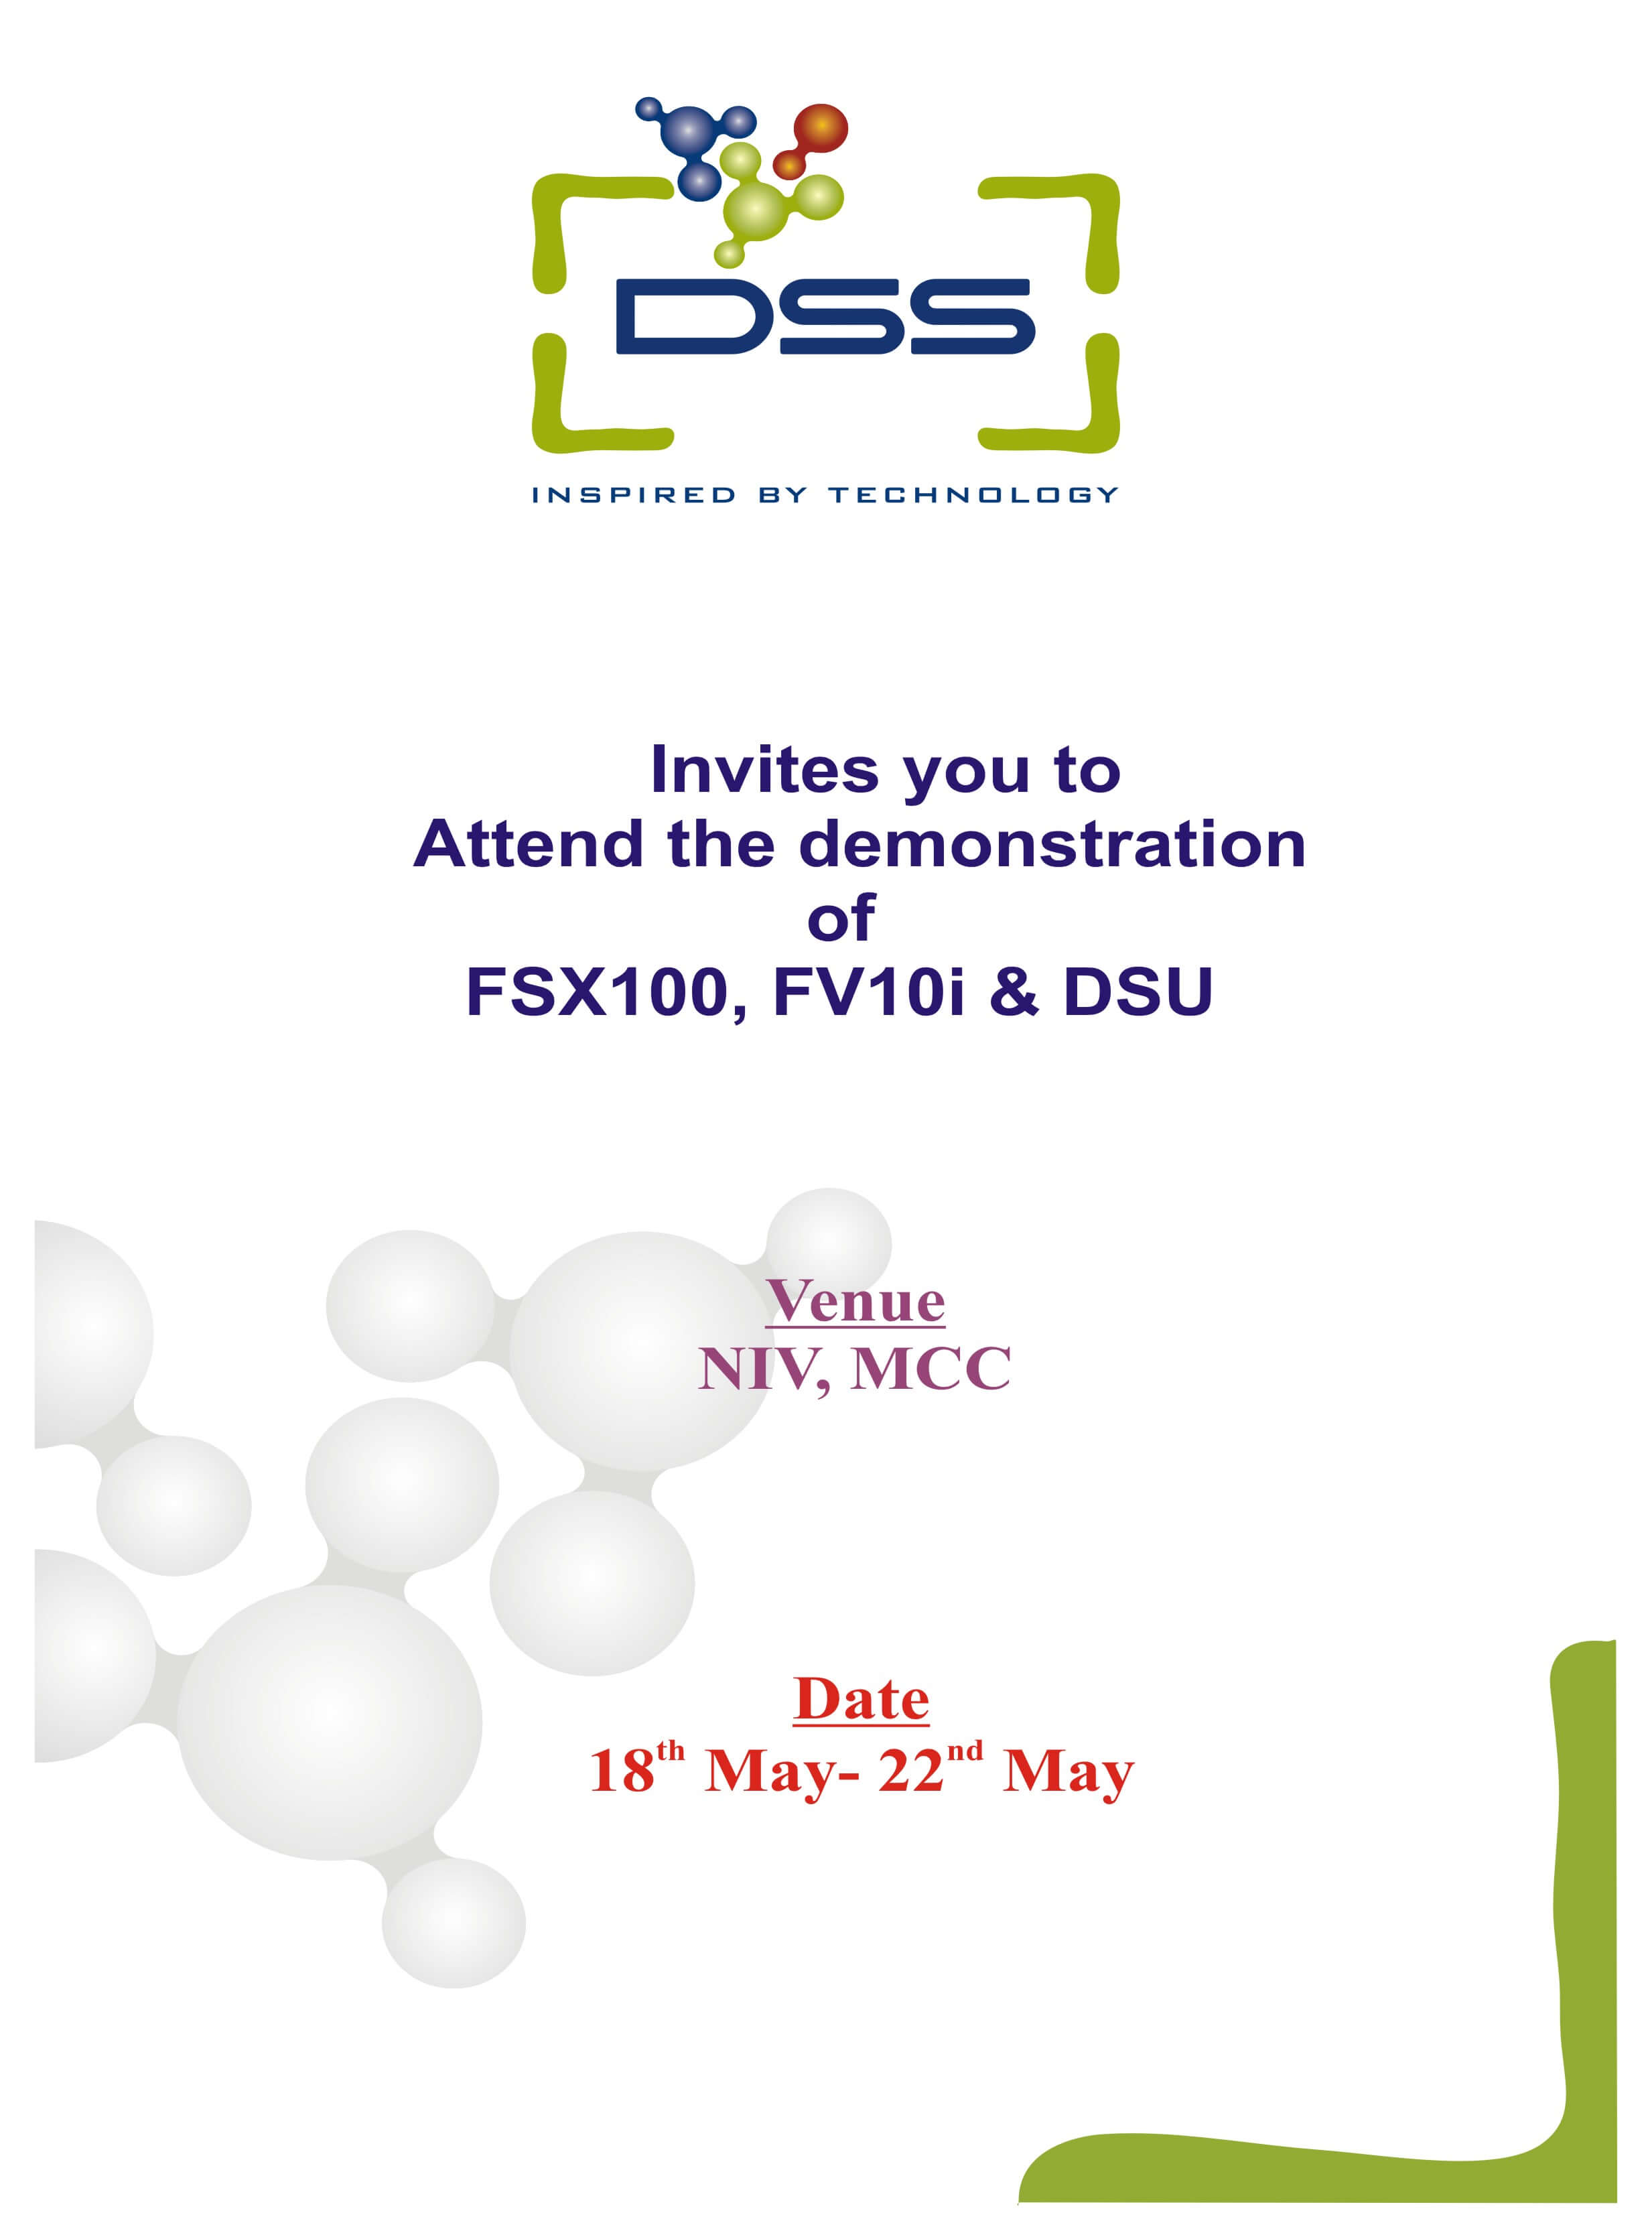 DSS Imagetech Invitation For The Demonstration Of Fsx100, Fv10i, Dsu